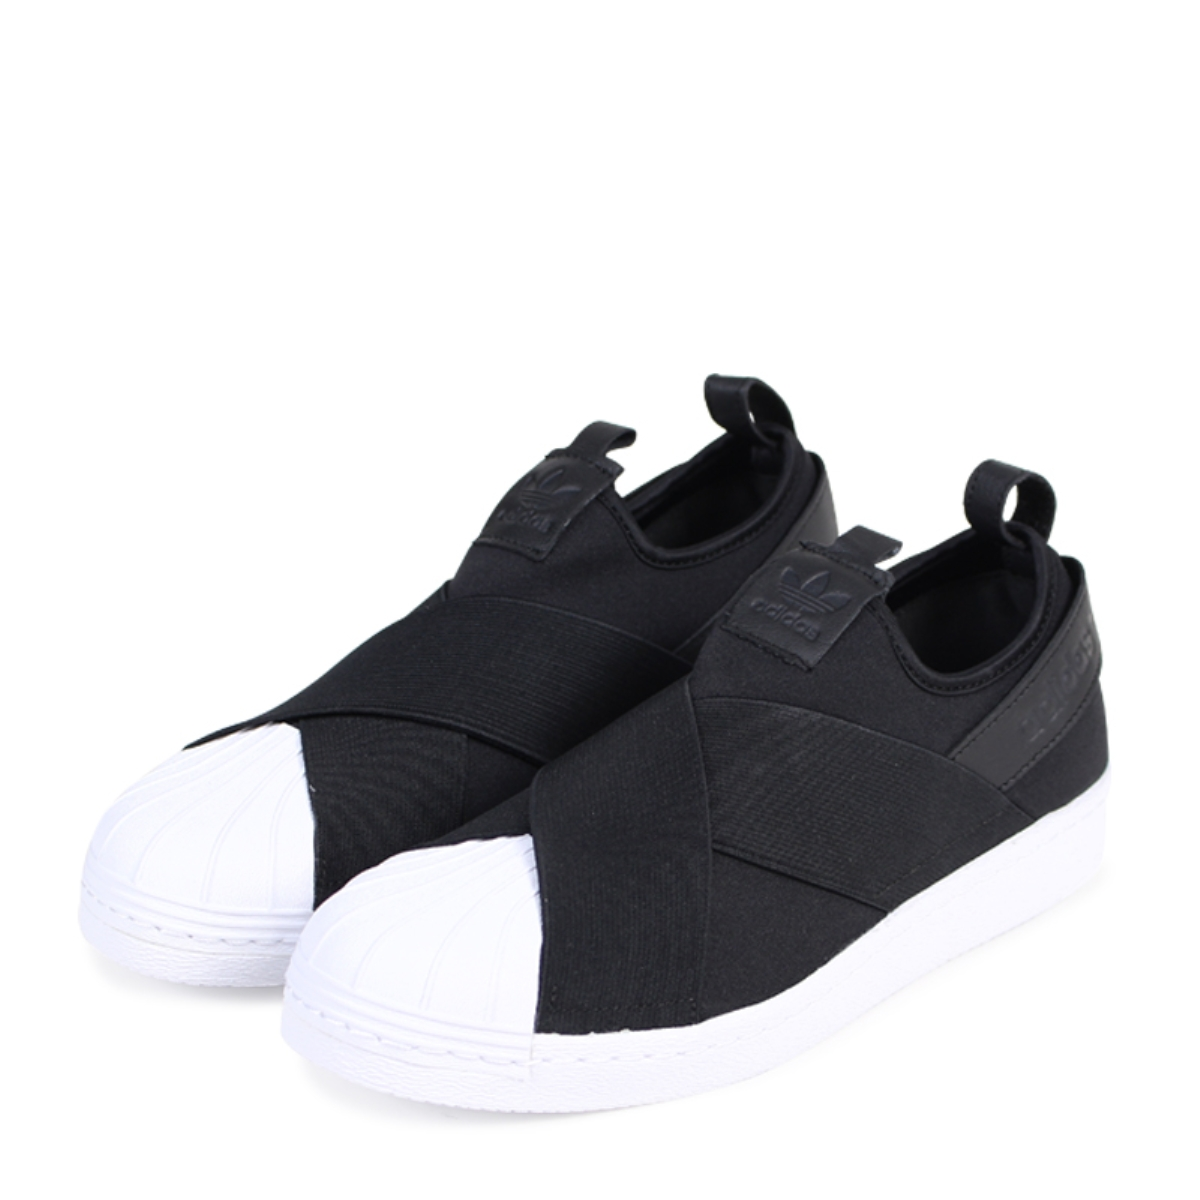 adidas Originals SUPERSTAR SLIP-ON Adidas superstar sneakers slip-ons men gap Dis BZ0112 black originals [1/30 Shinnyu load] [181]